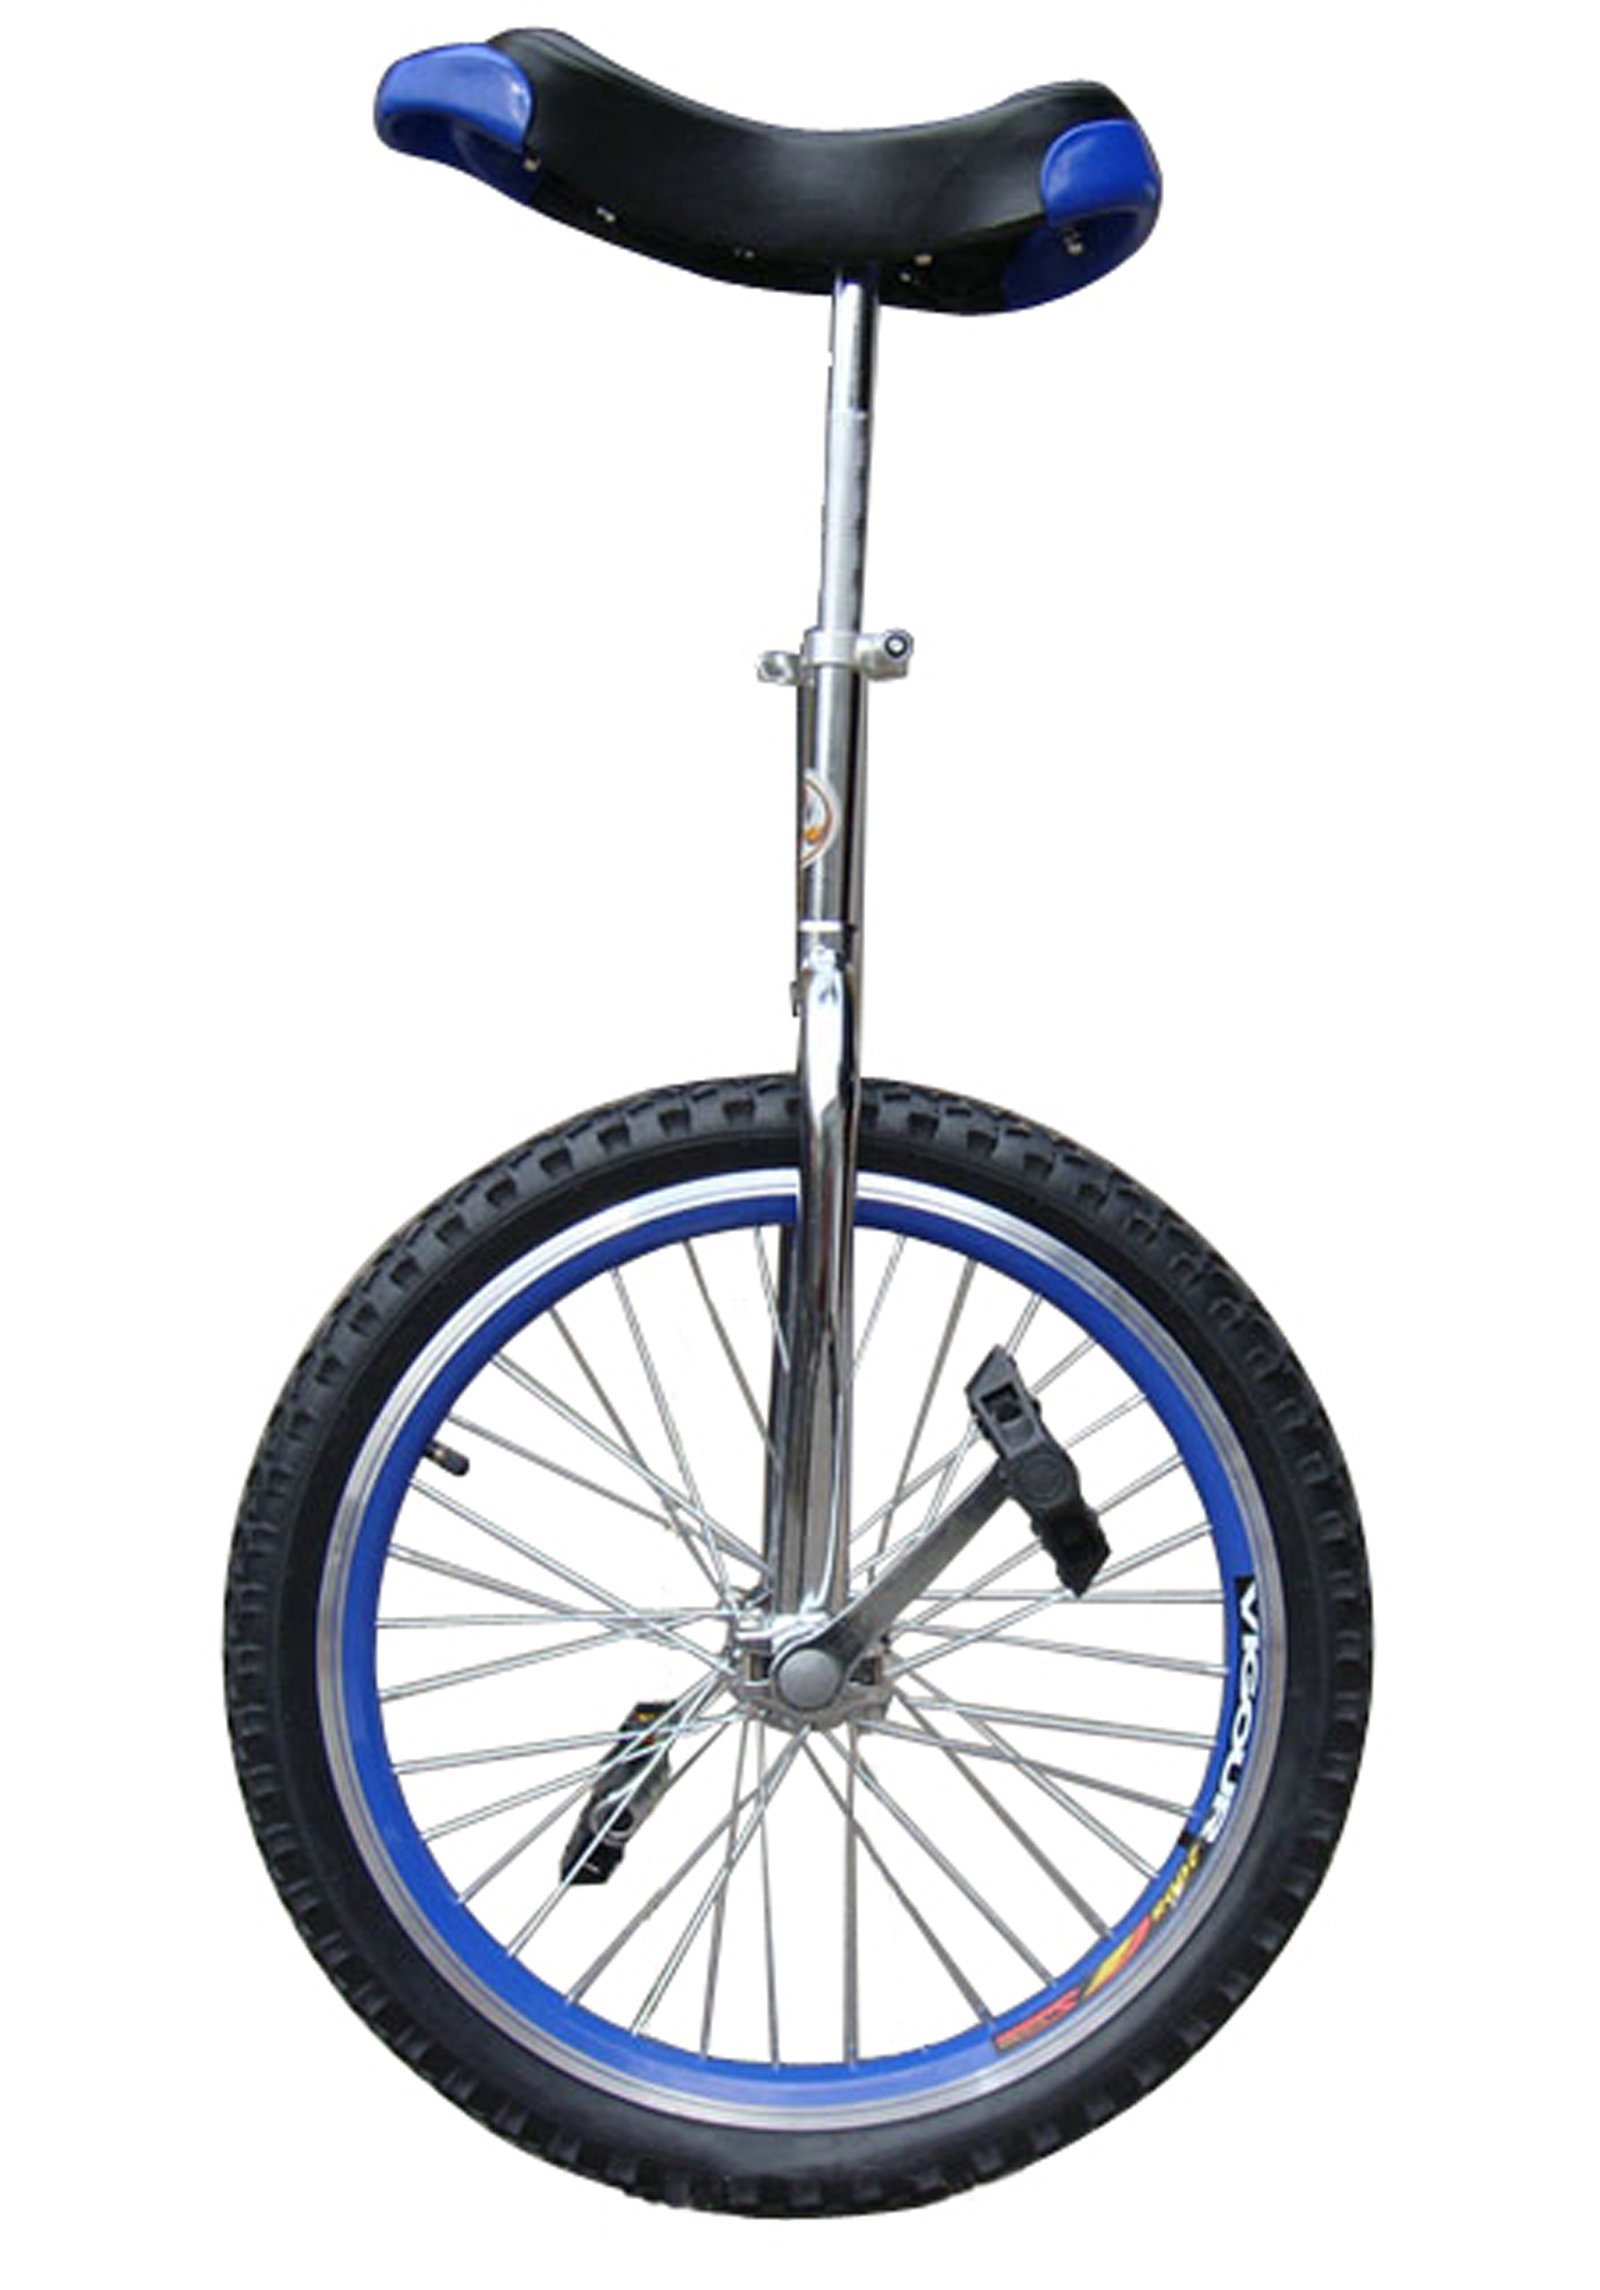 Fantasycart 24'' Unicycle Cycling In & Out Door Chrome Blue with skidproof tire